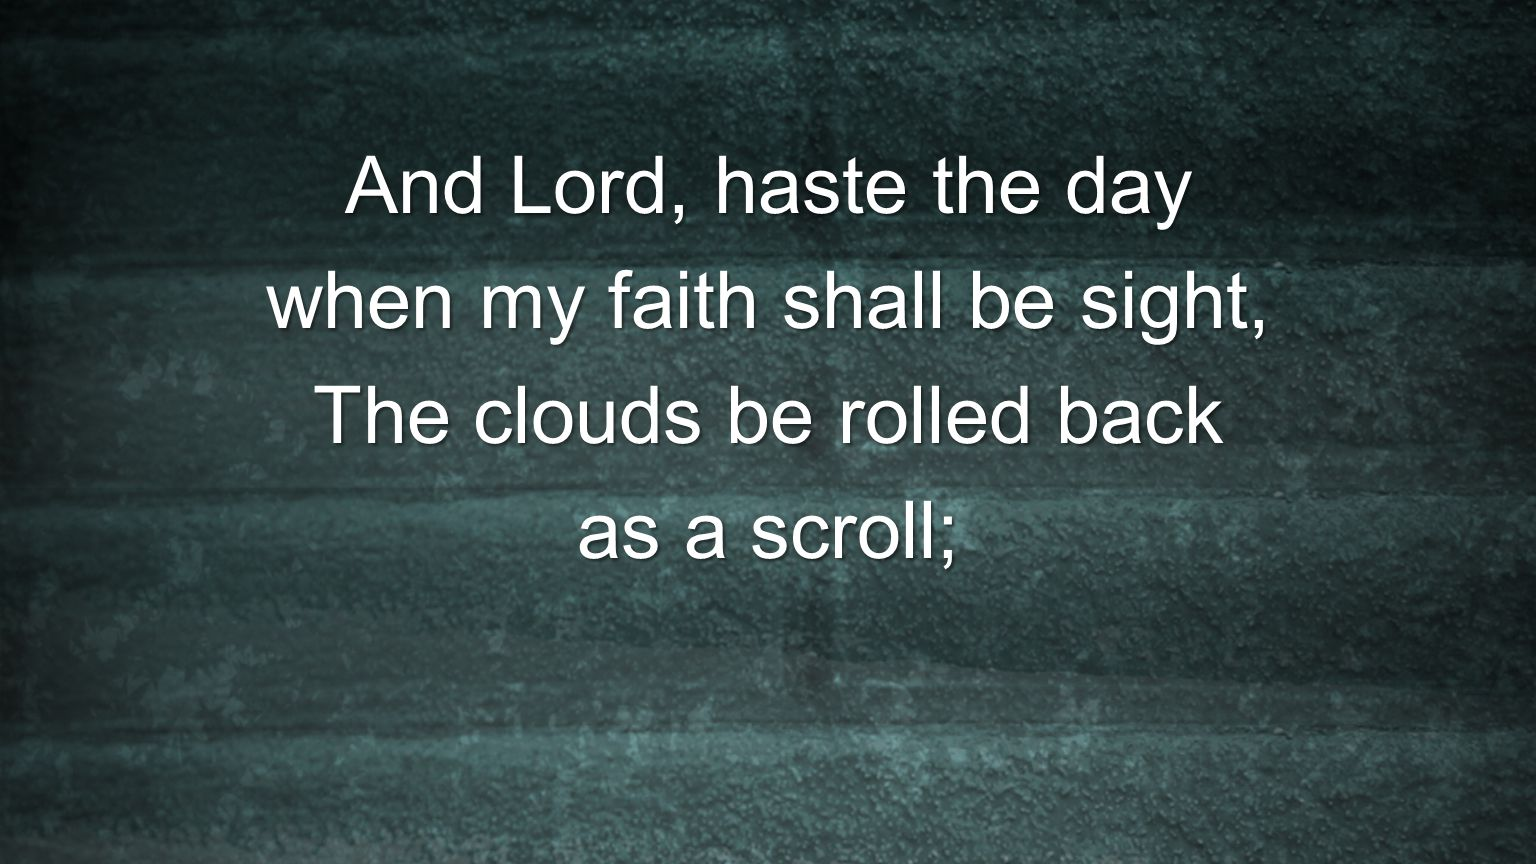 And Lord, haste the day when my faith shall be sight, The clouds be rolled back as a scroll;